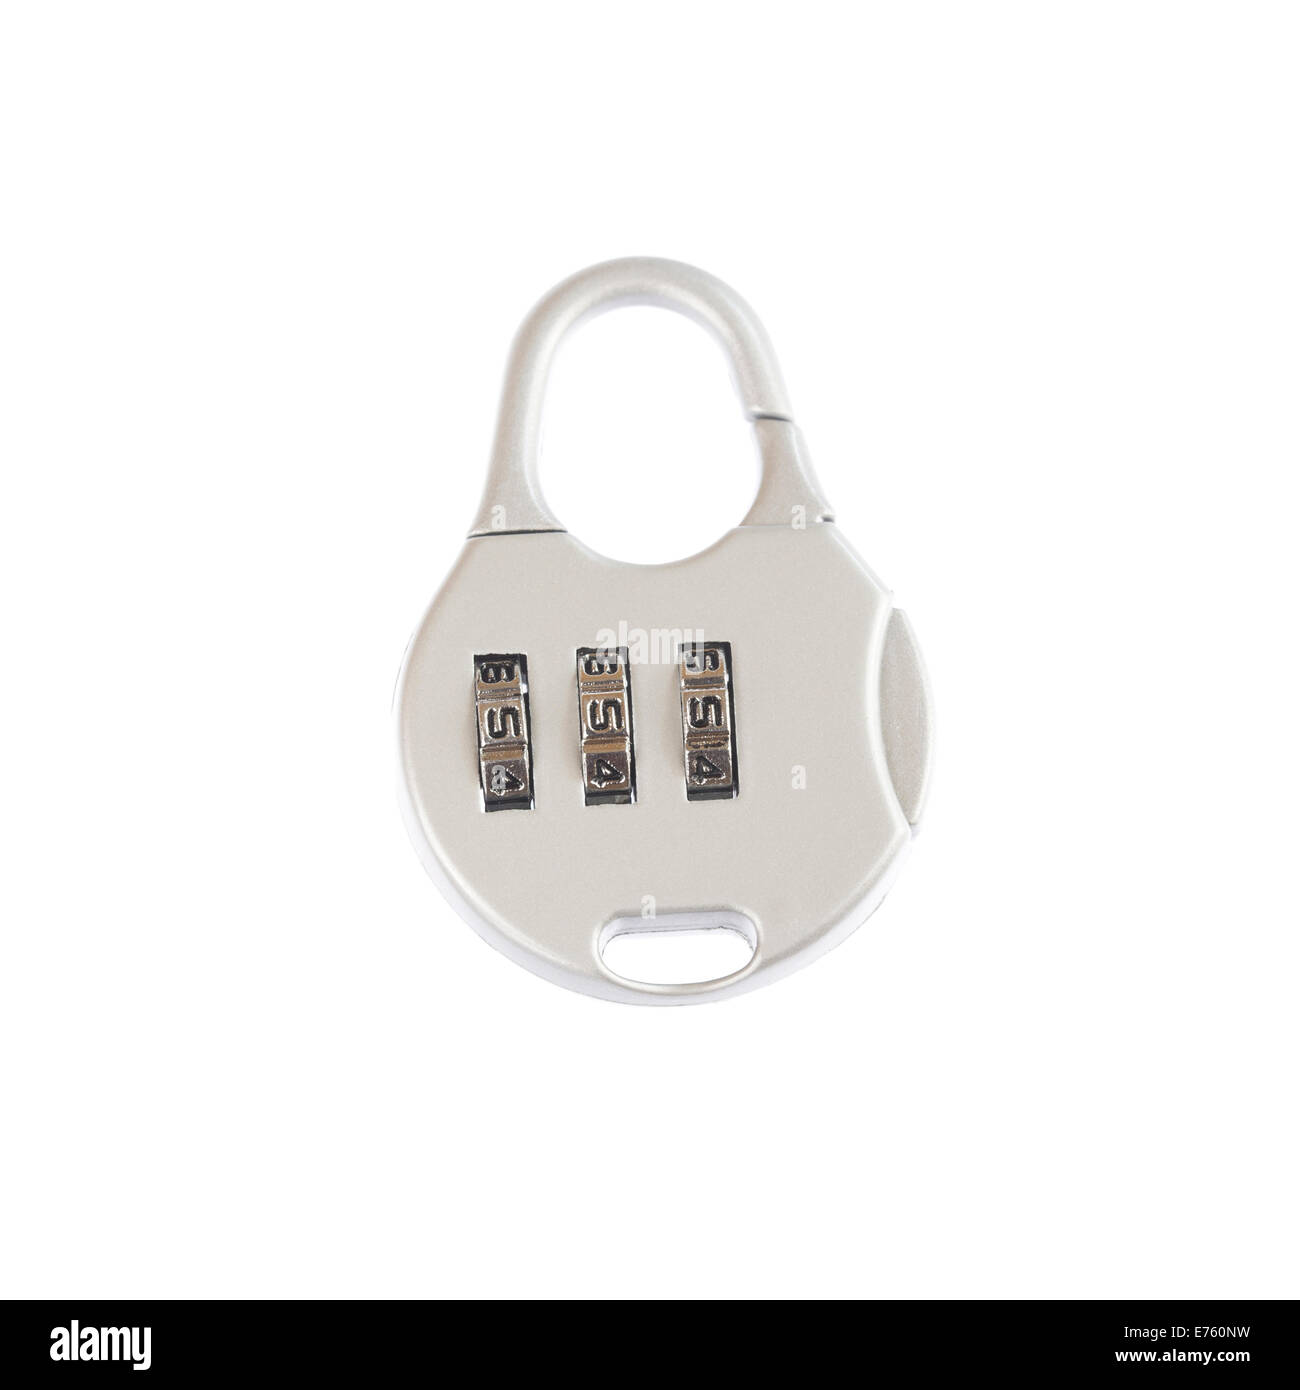 Padlock with code numbers - Stock Image